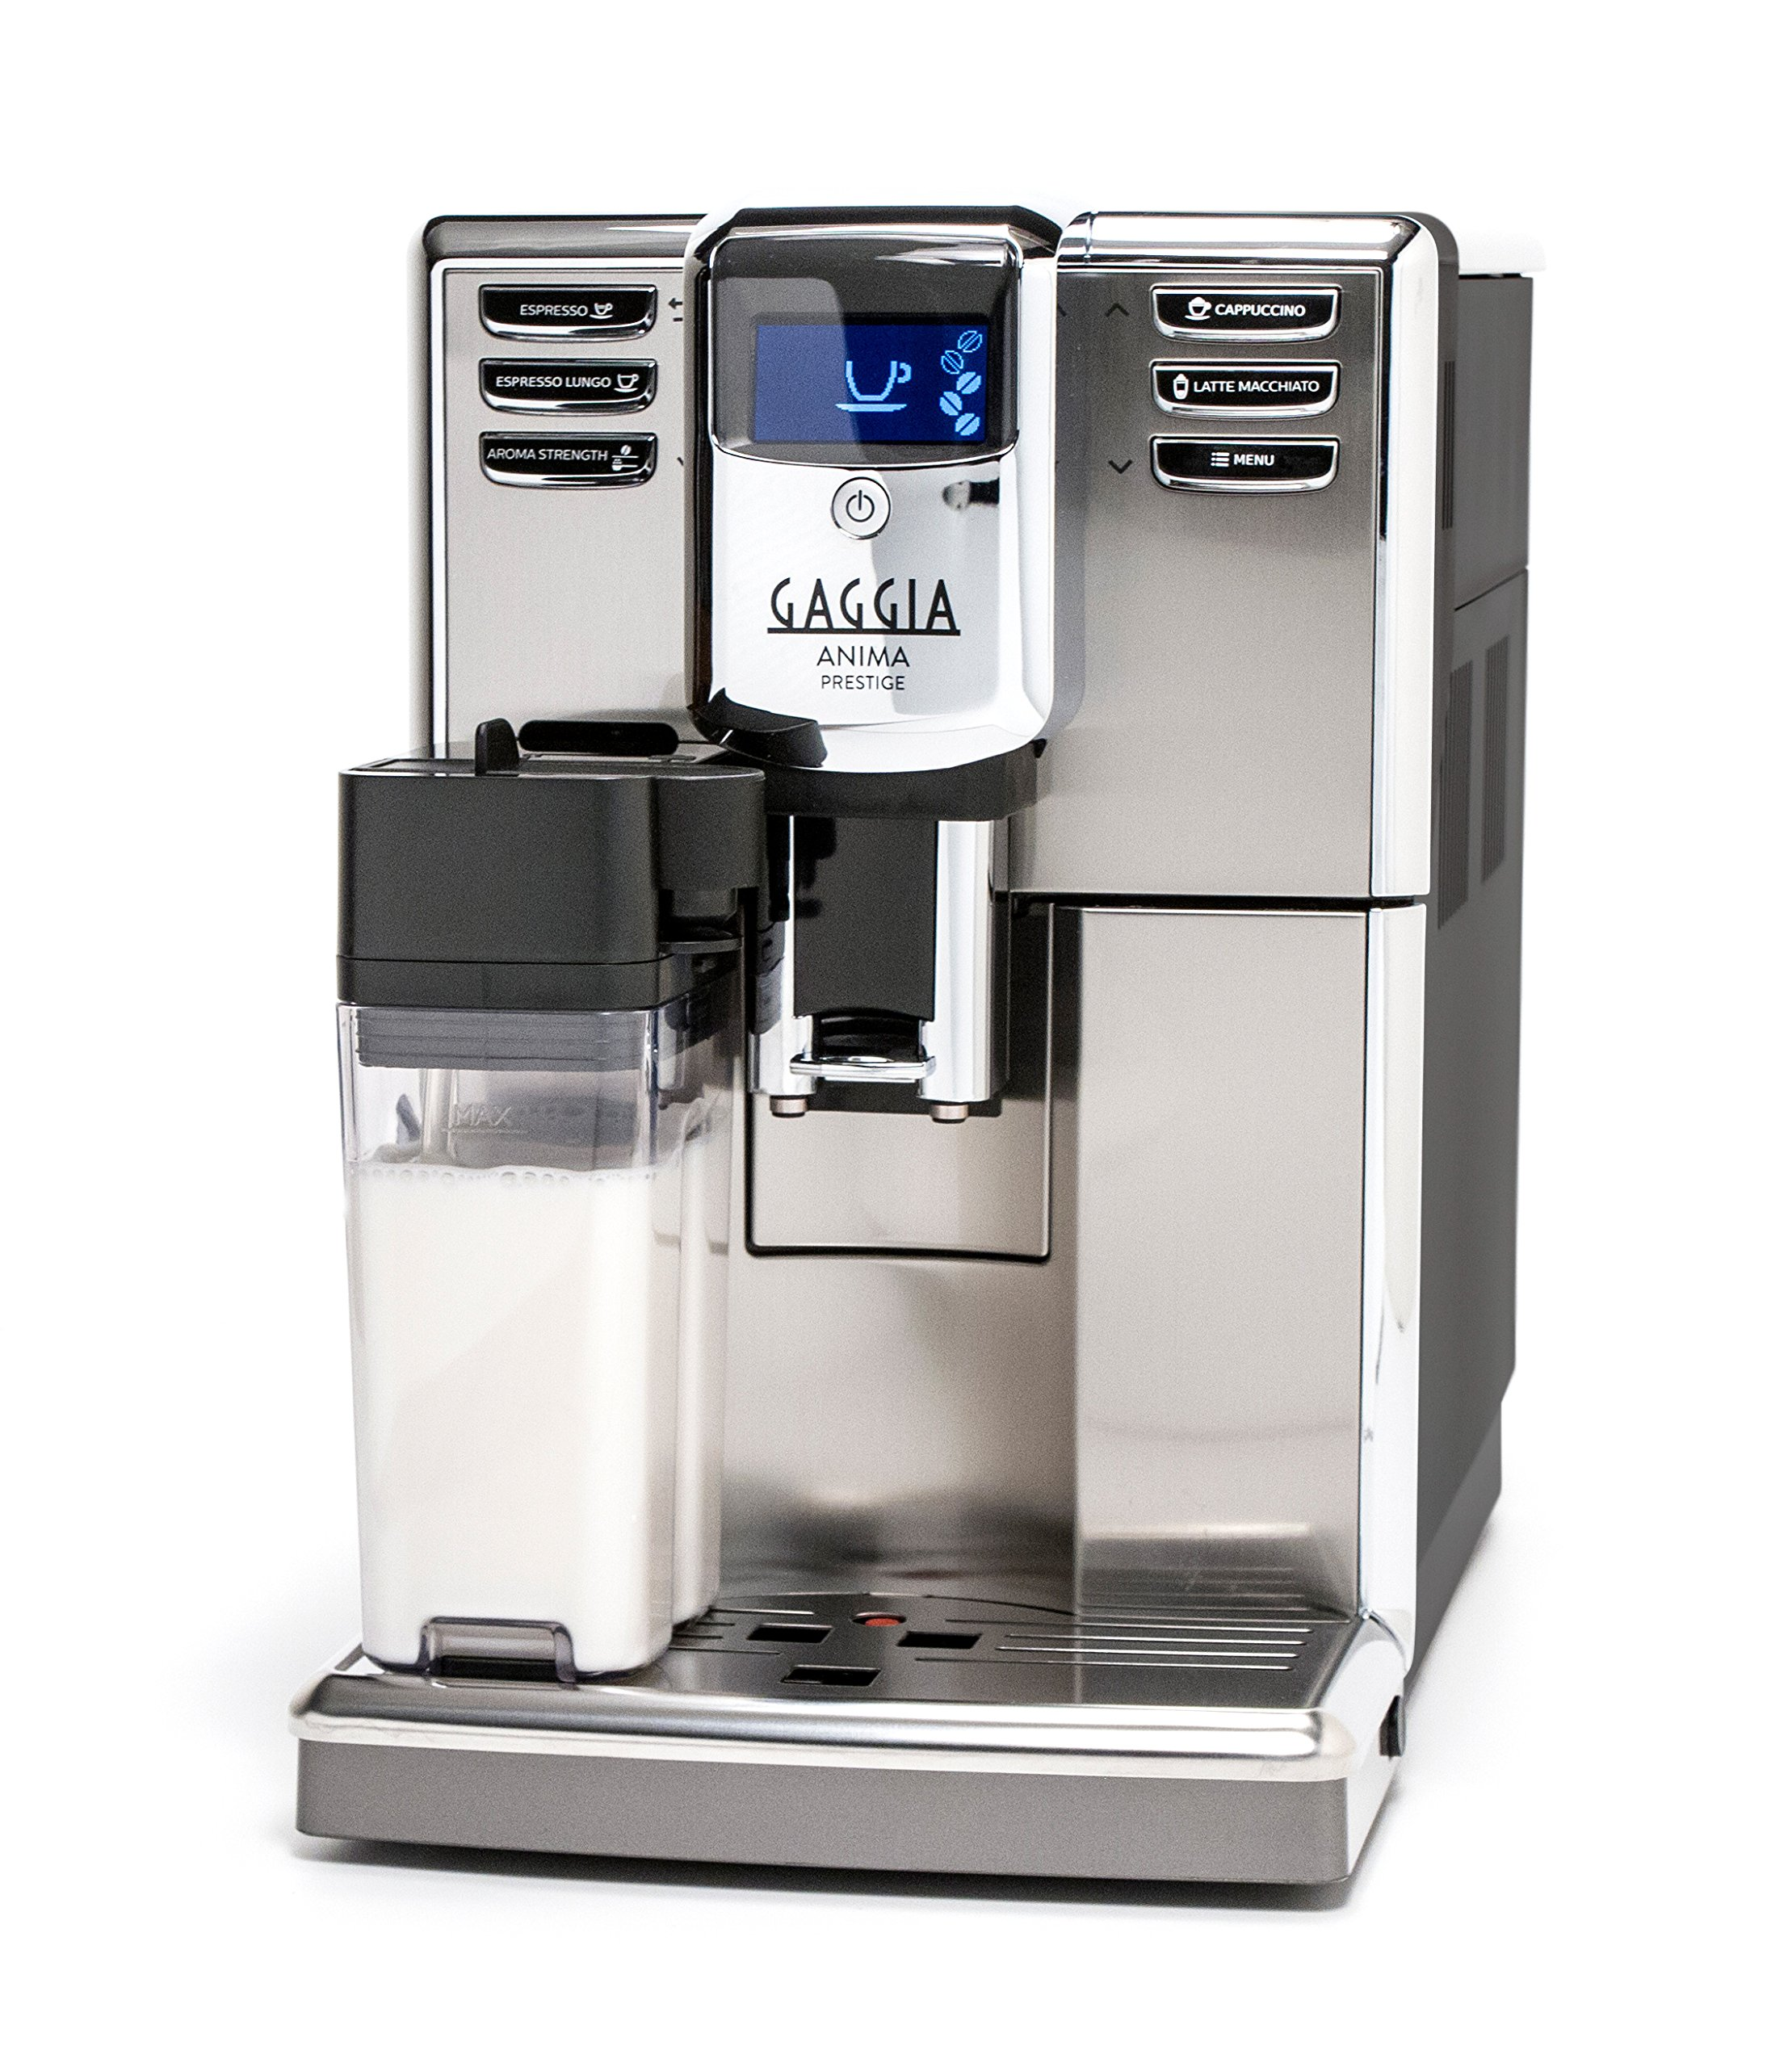 Gaggia Anima Prestige Automatic Coffee Machine, Super Automatic Frothing for Latte, Macchiato, Cappuccino and Espresso Drinks with Programmable Options by Gaggia